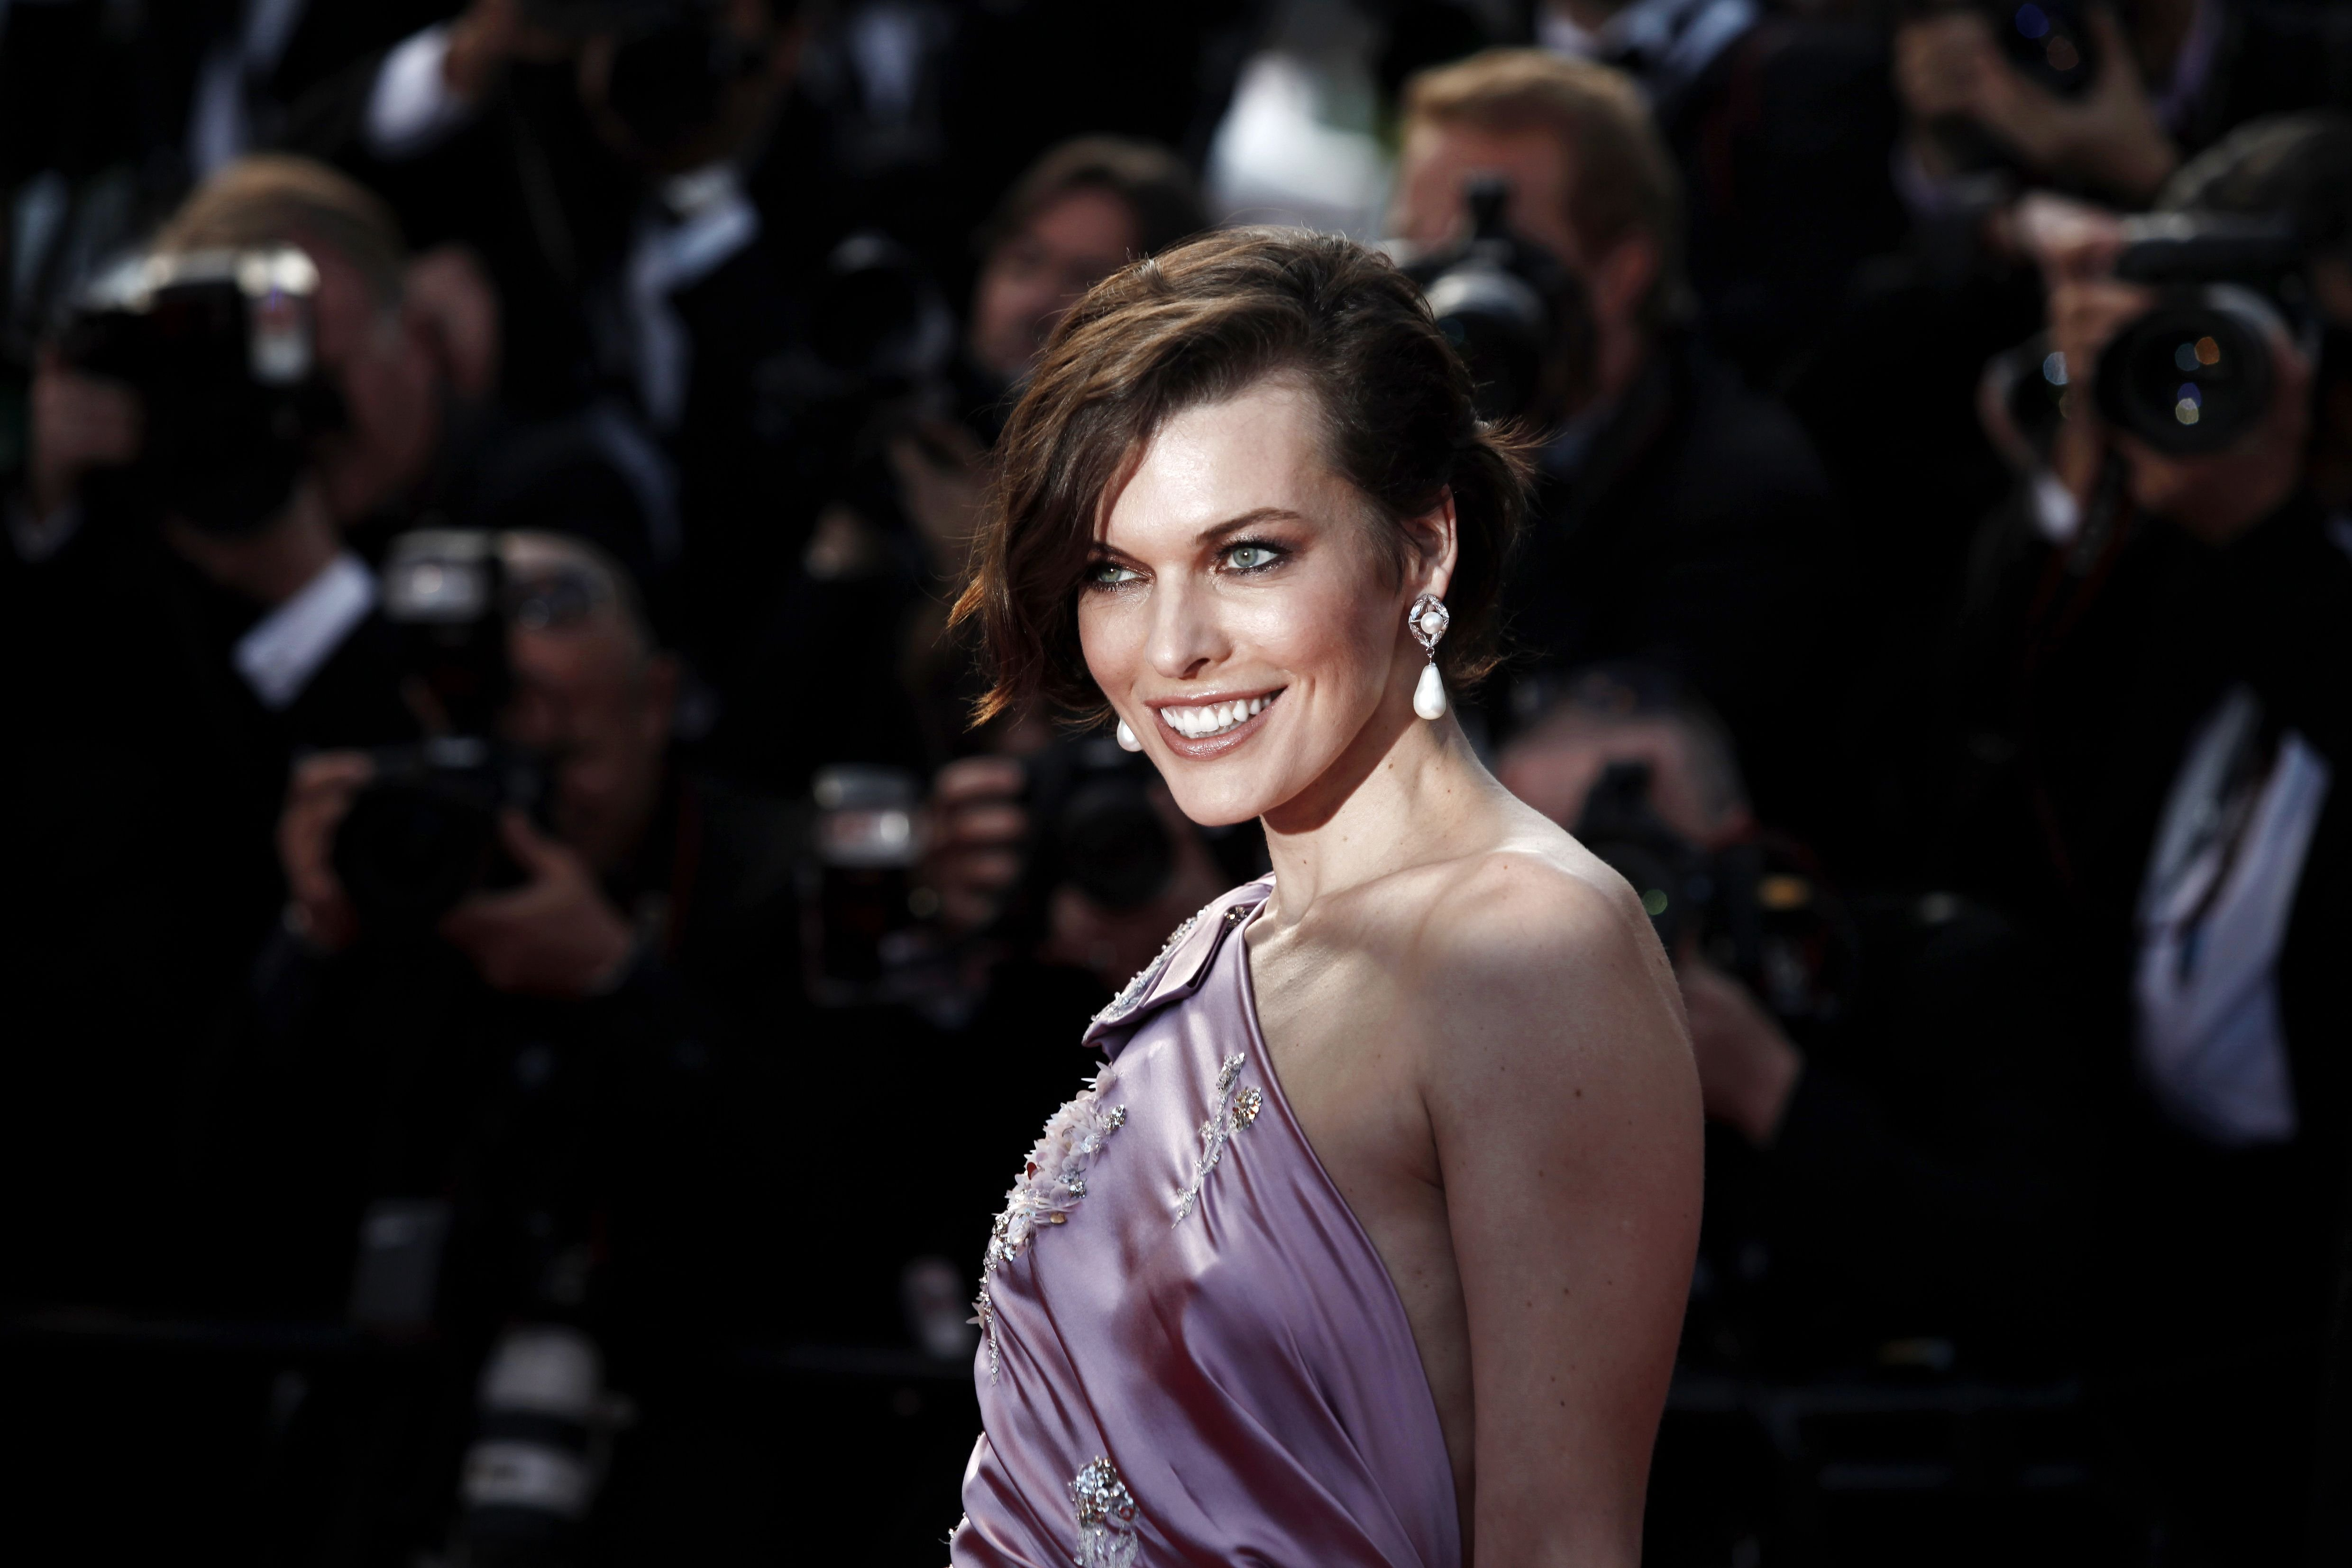 Milla Jovovich attends the 'On The Road' Premiere during the 65th Cannes Film Festival. | Source: Shutterstock